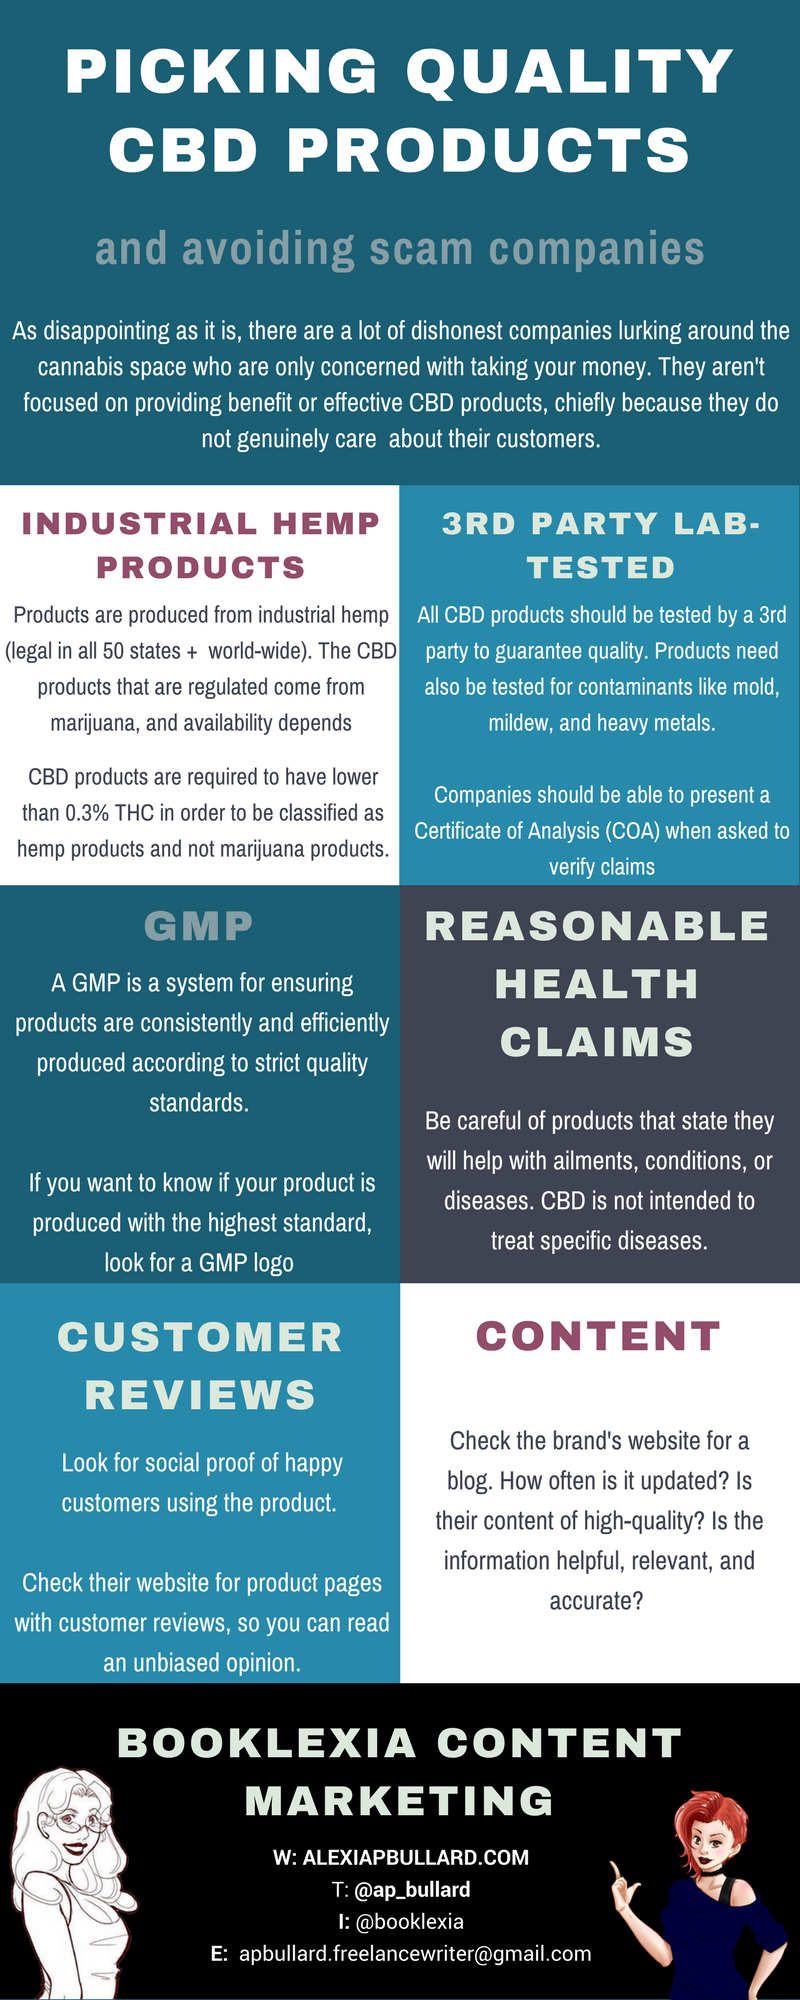 Create an infographic comparing two products, using these value points as a basis